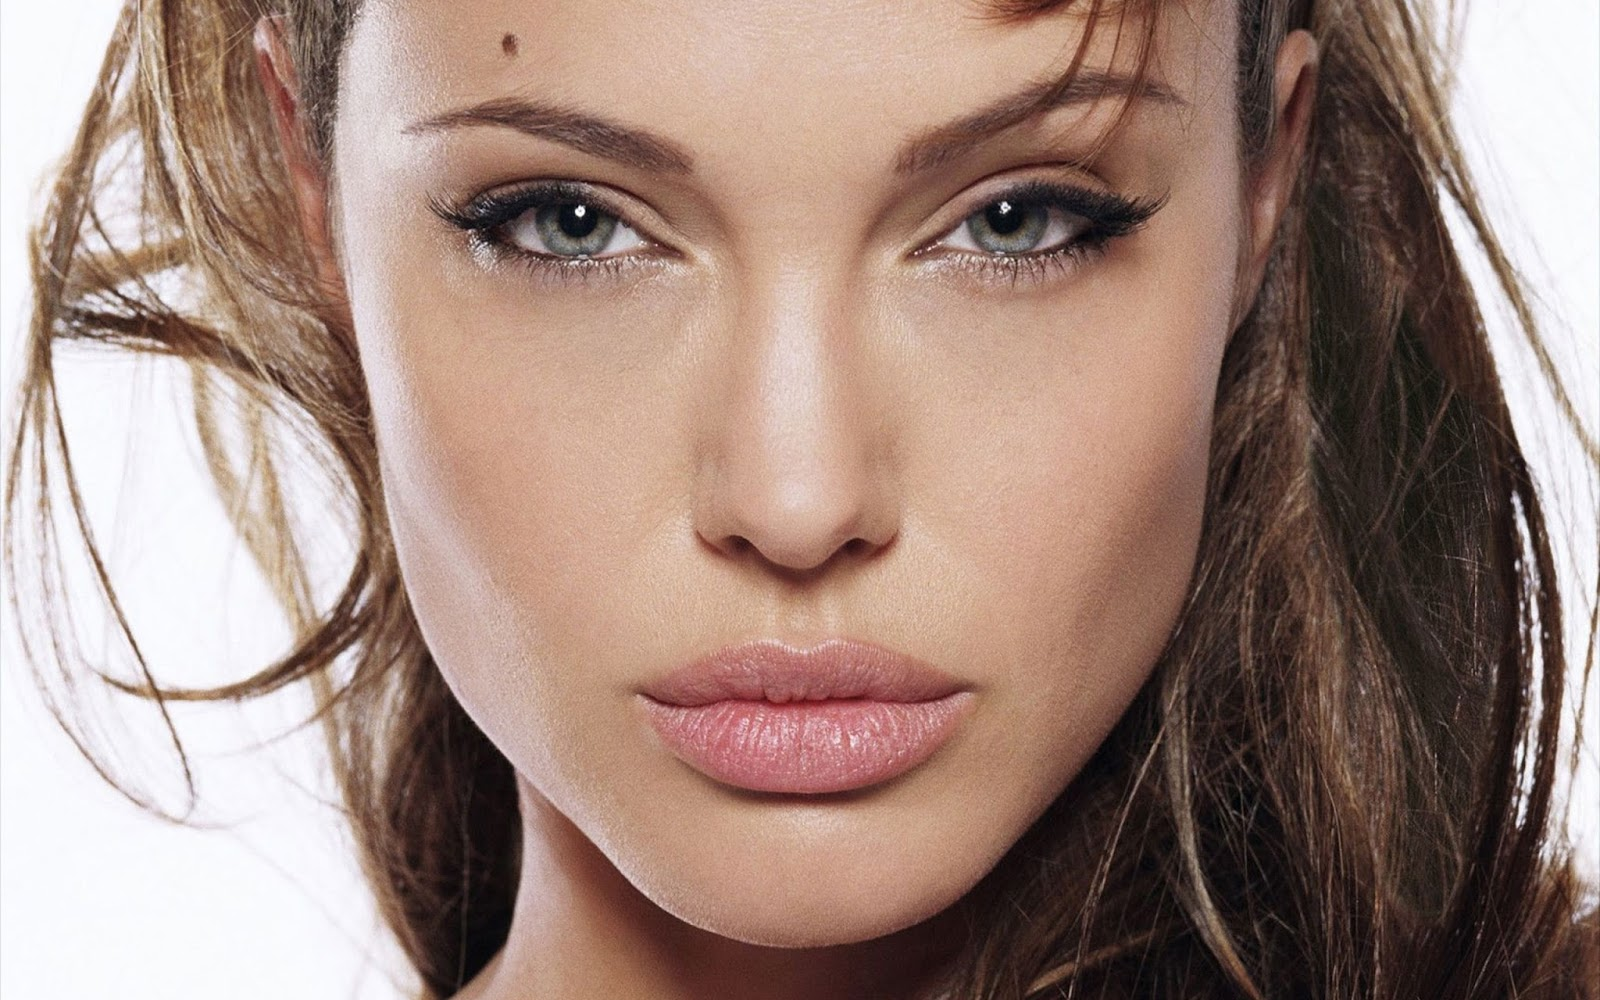 Angelina Jolie in Pink lips- Hot actress bold pics sexy images of hollywood seducing celebrity